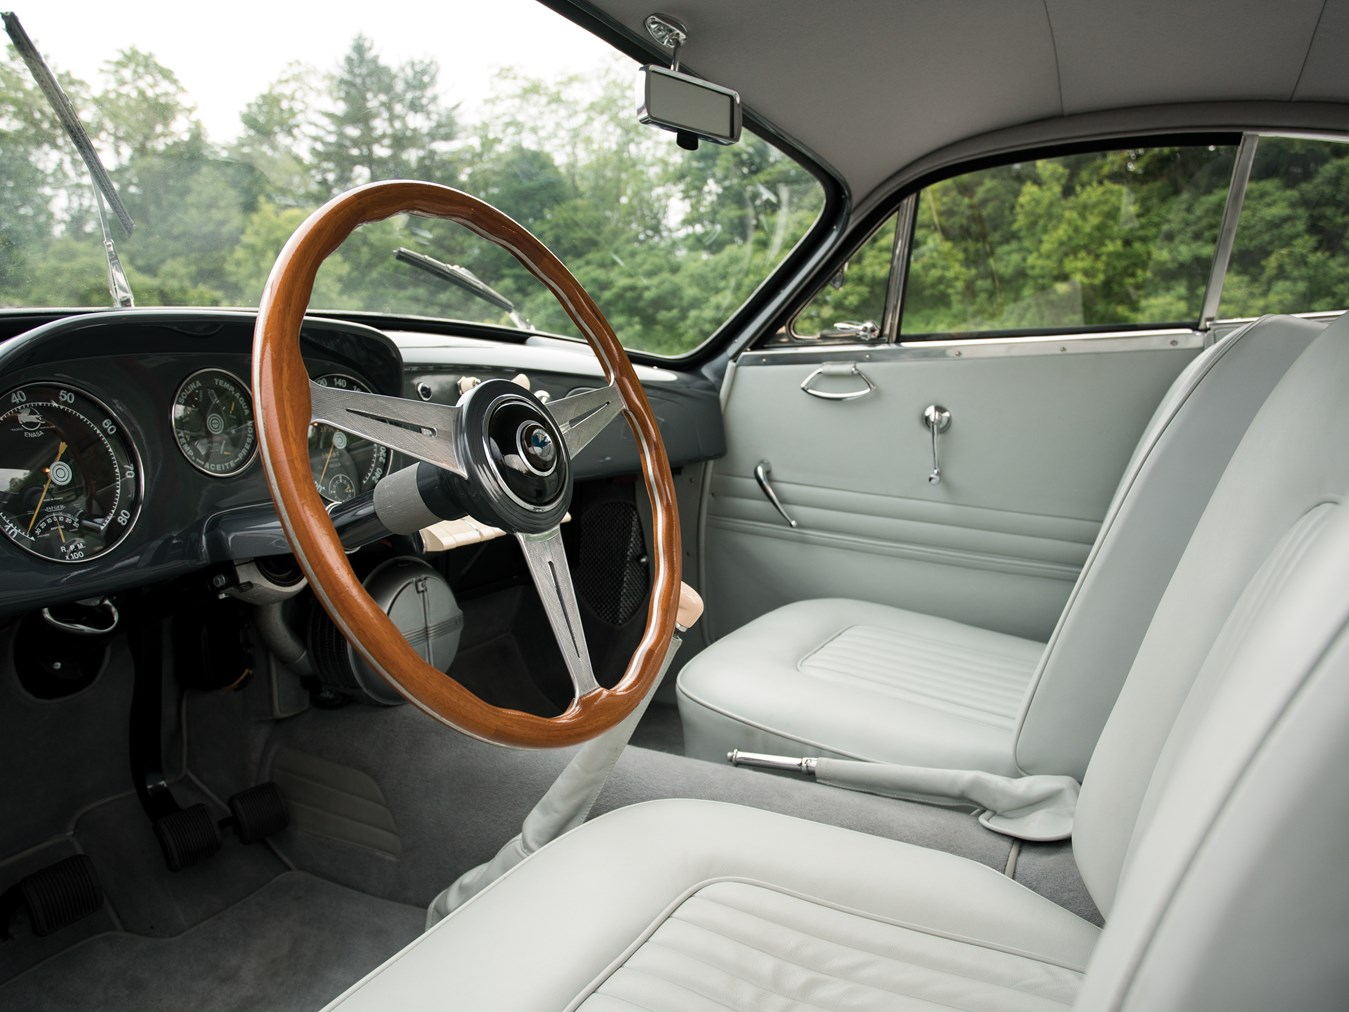 The cockpit of the Pegaso is restrained and purposeful.